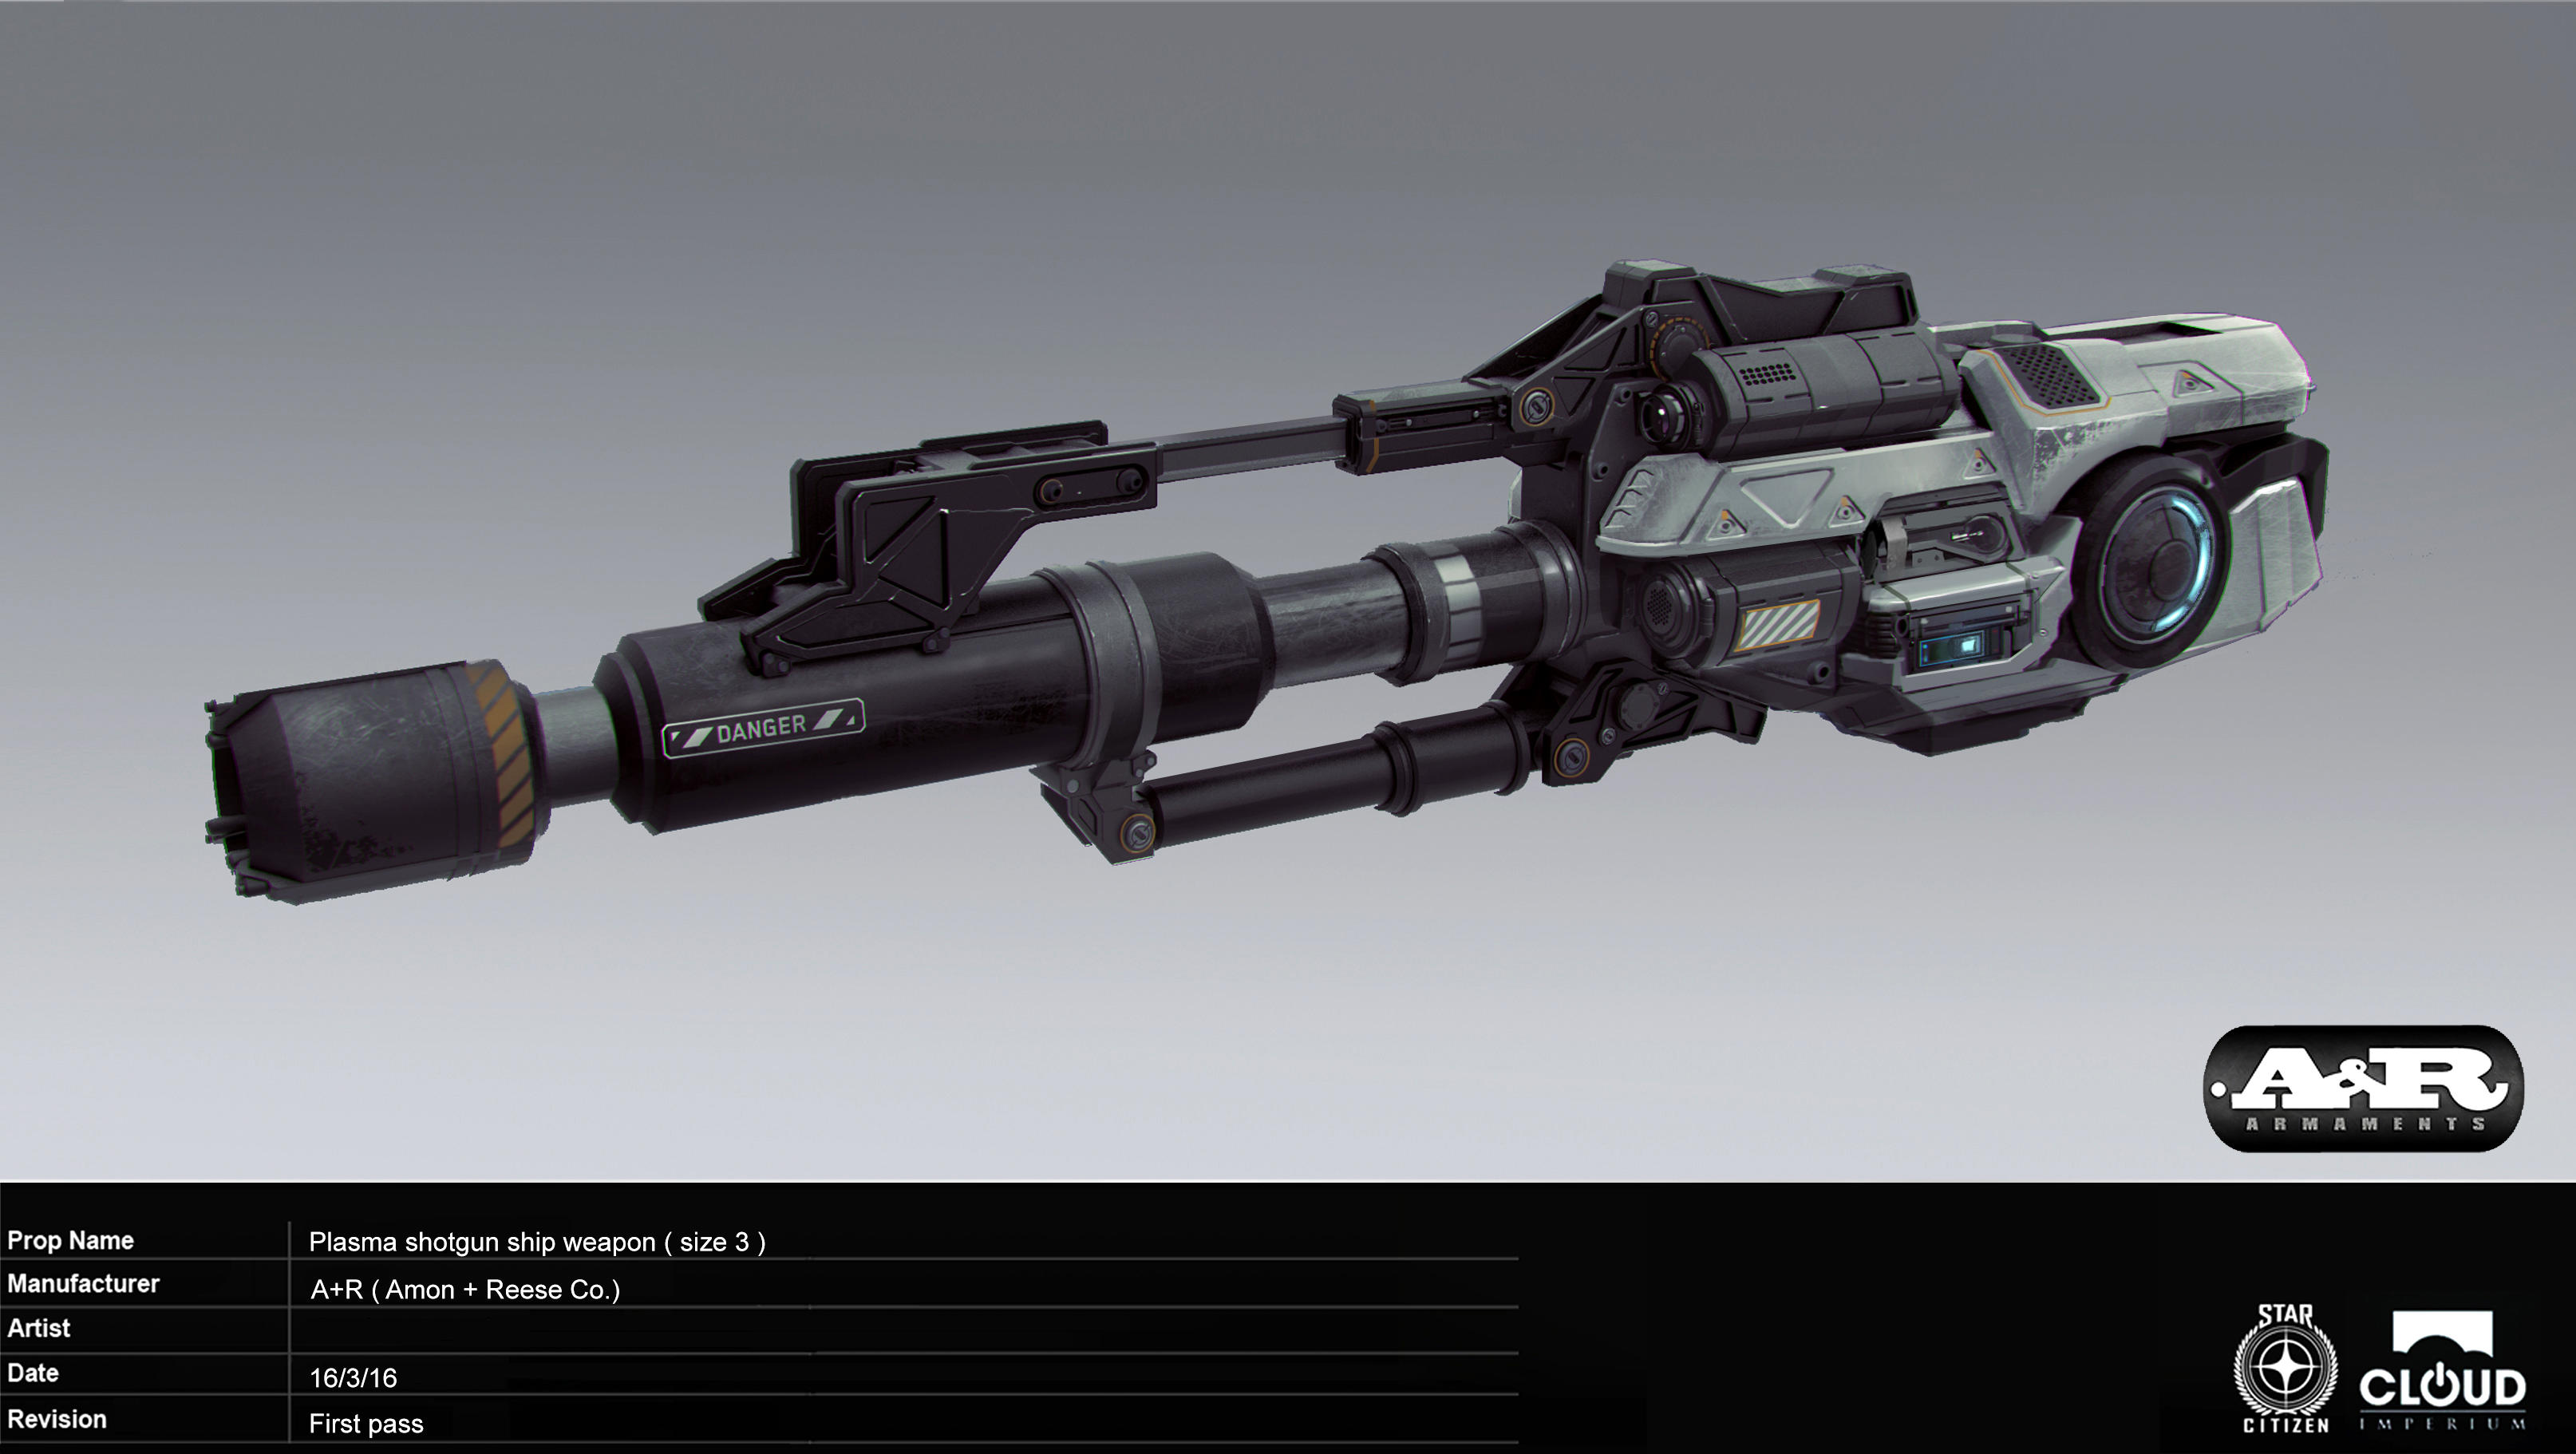 Plasma shotgun ship weapon (size 3)